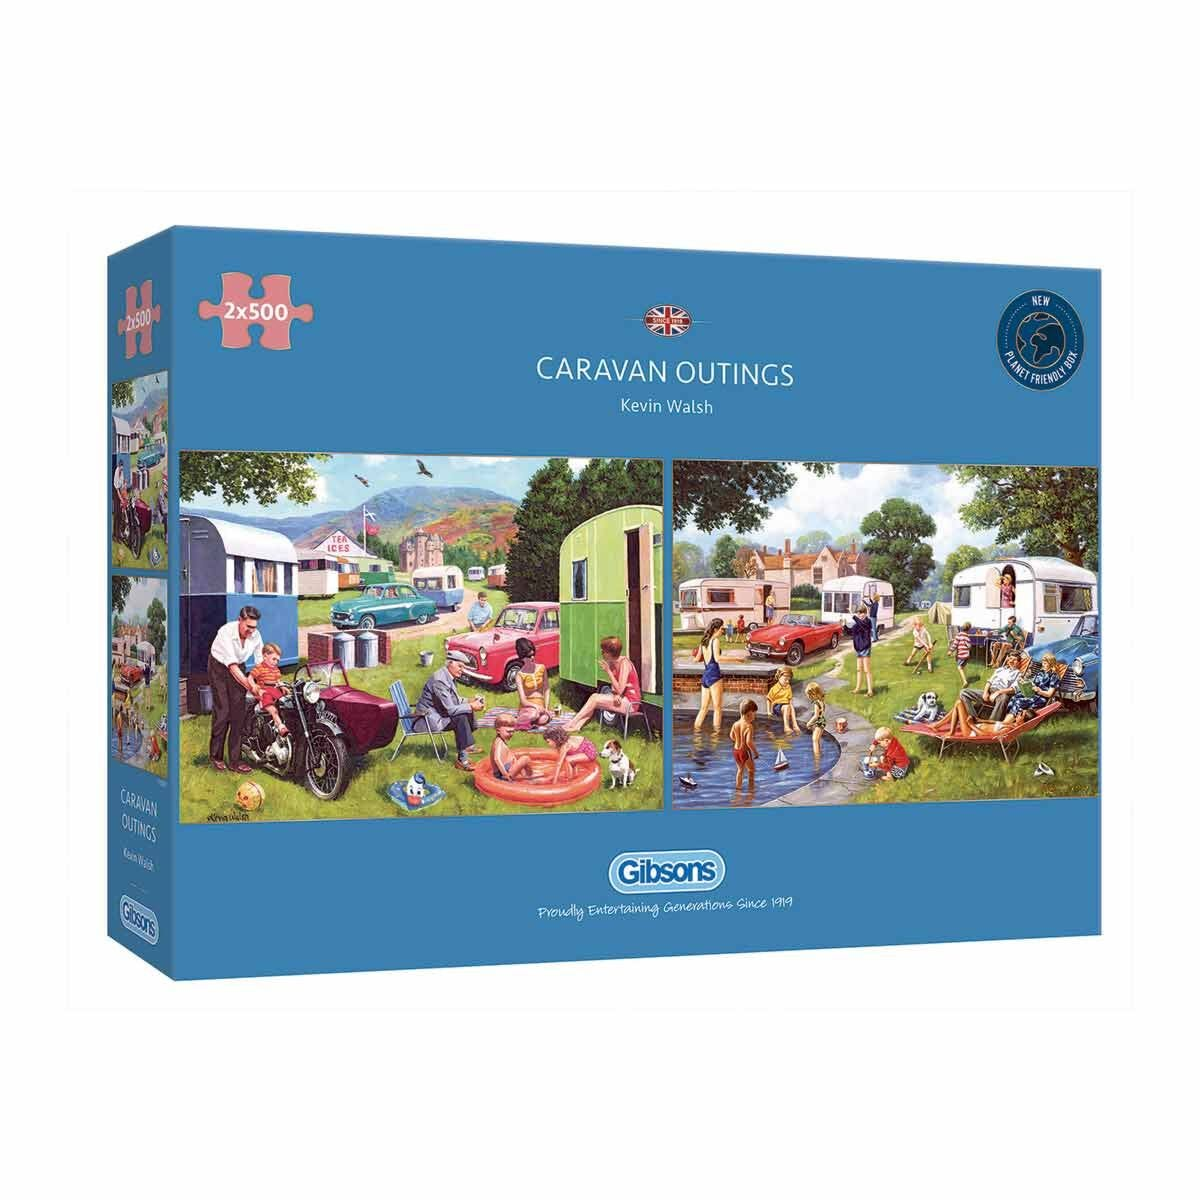 Gibsons Caravan Outings 500 Piece Jigsaw Puzzles Pack of 2